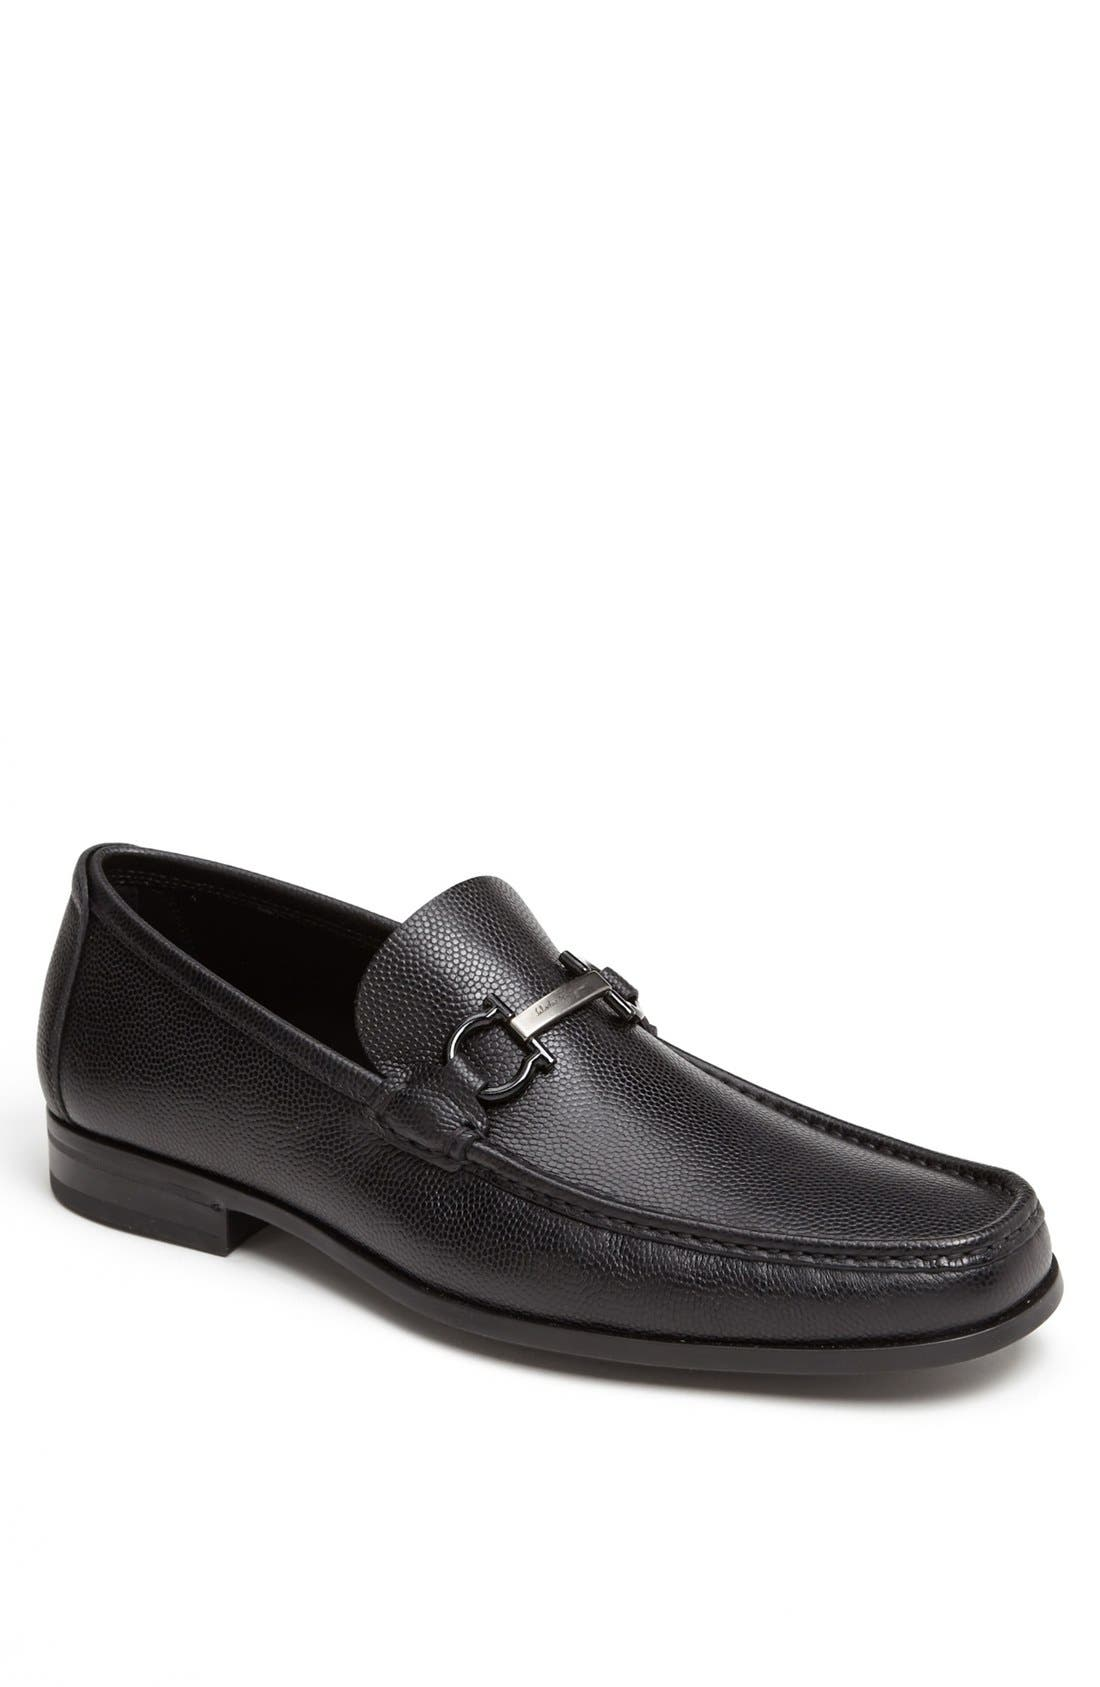 'Regal' Pebbled Leather Loafer,                             Main thumbnail 1, color,                             001